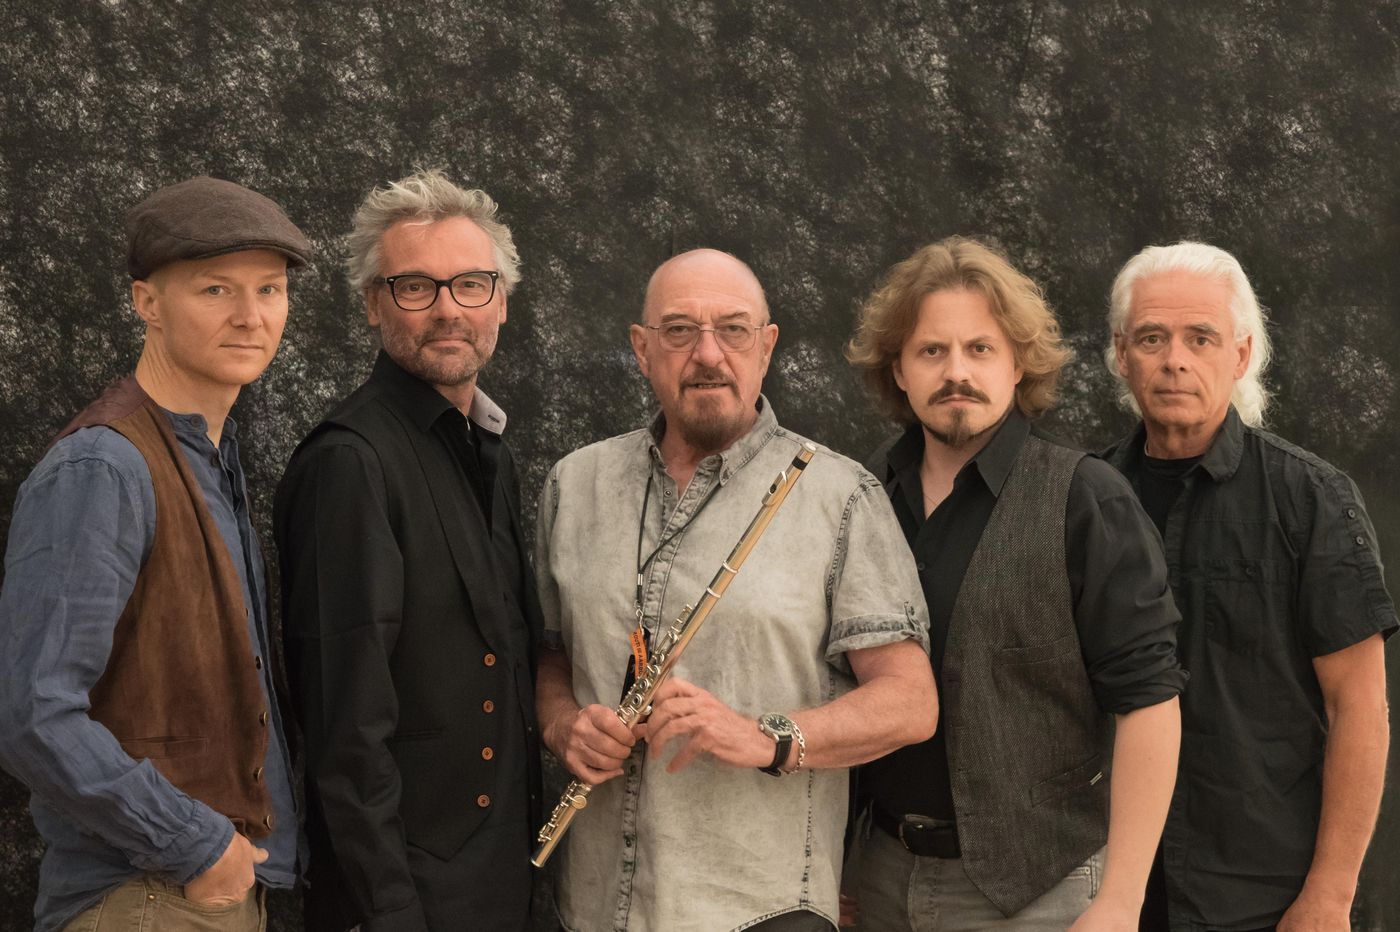 Jethro Tull celebrates 50 years at the Mann